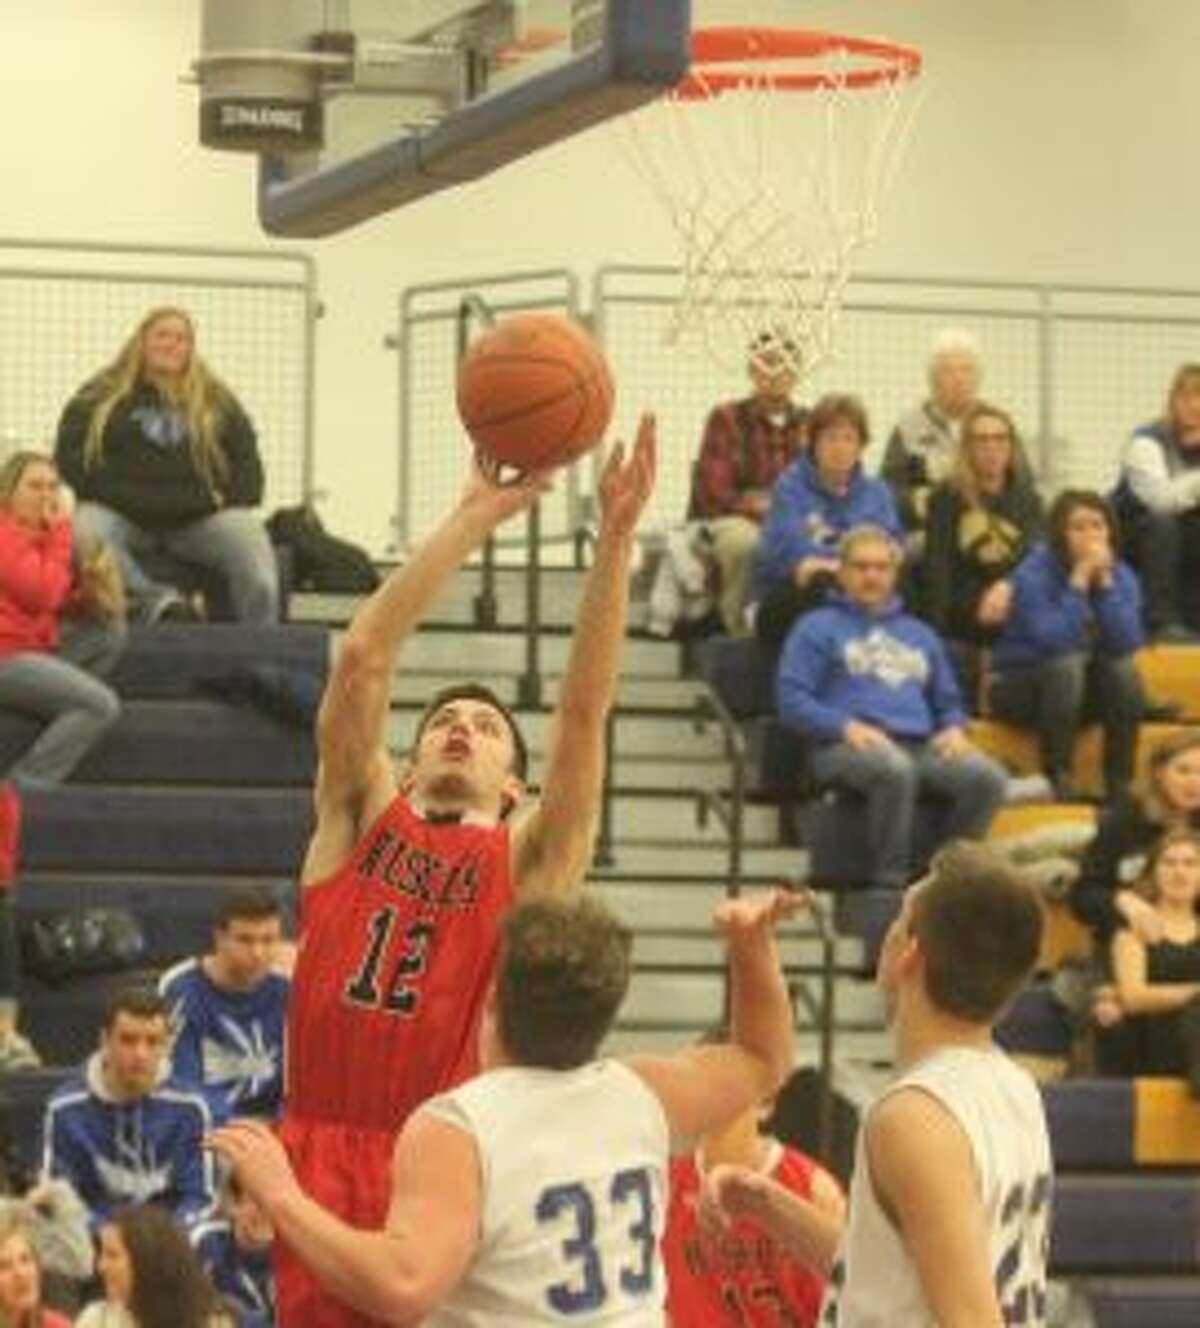 Tom Ross goes up for a layup in a loss to the Portagers. (Photo/Robert Myers)